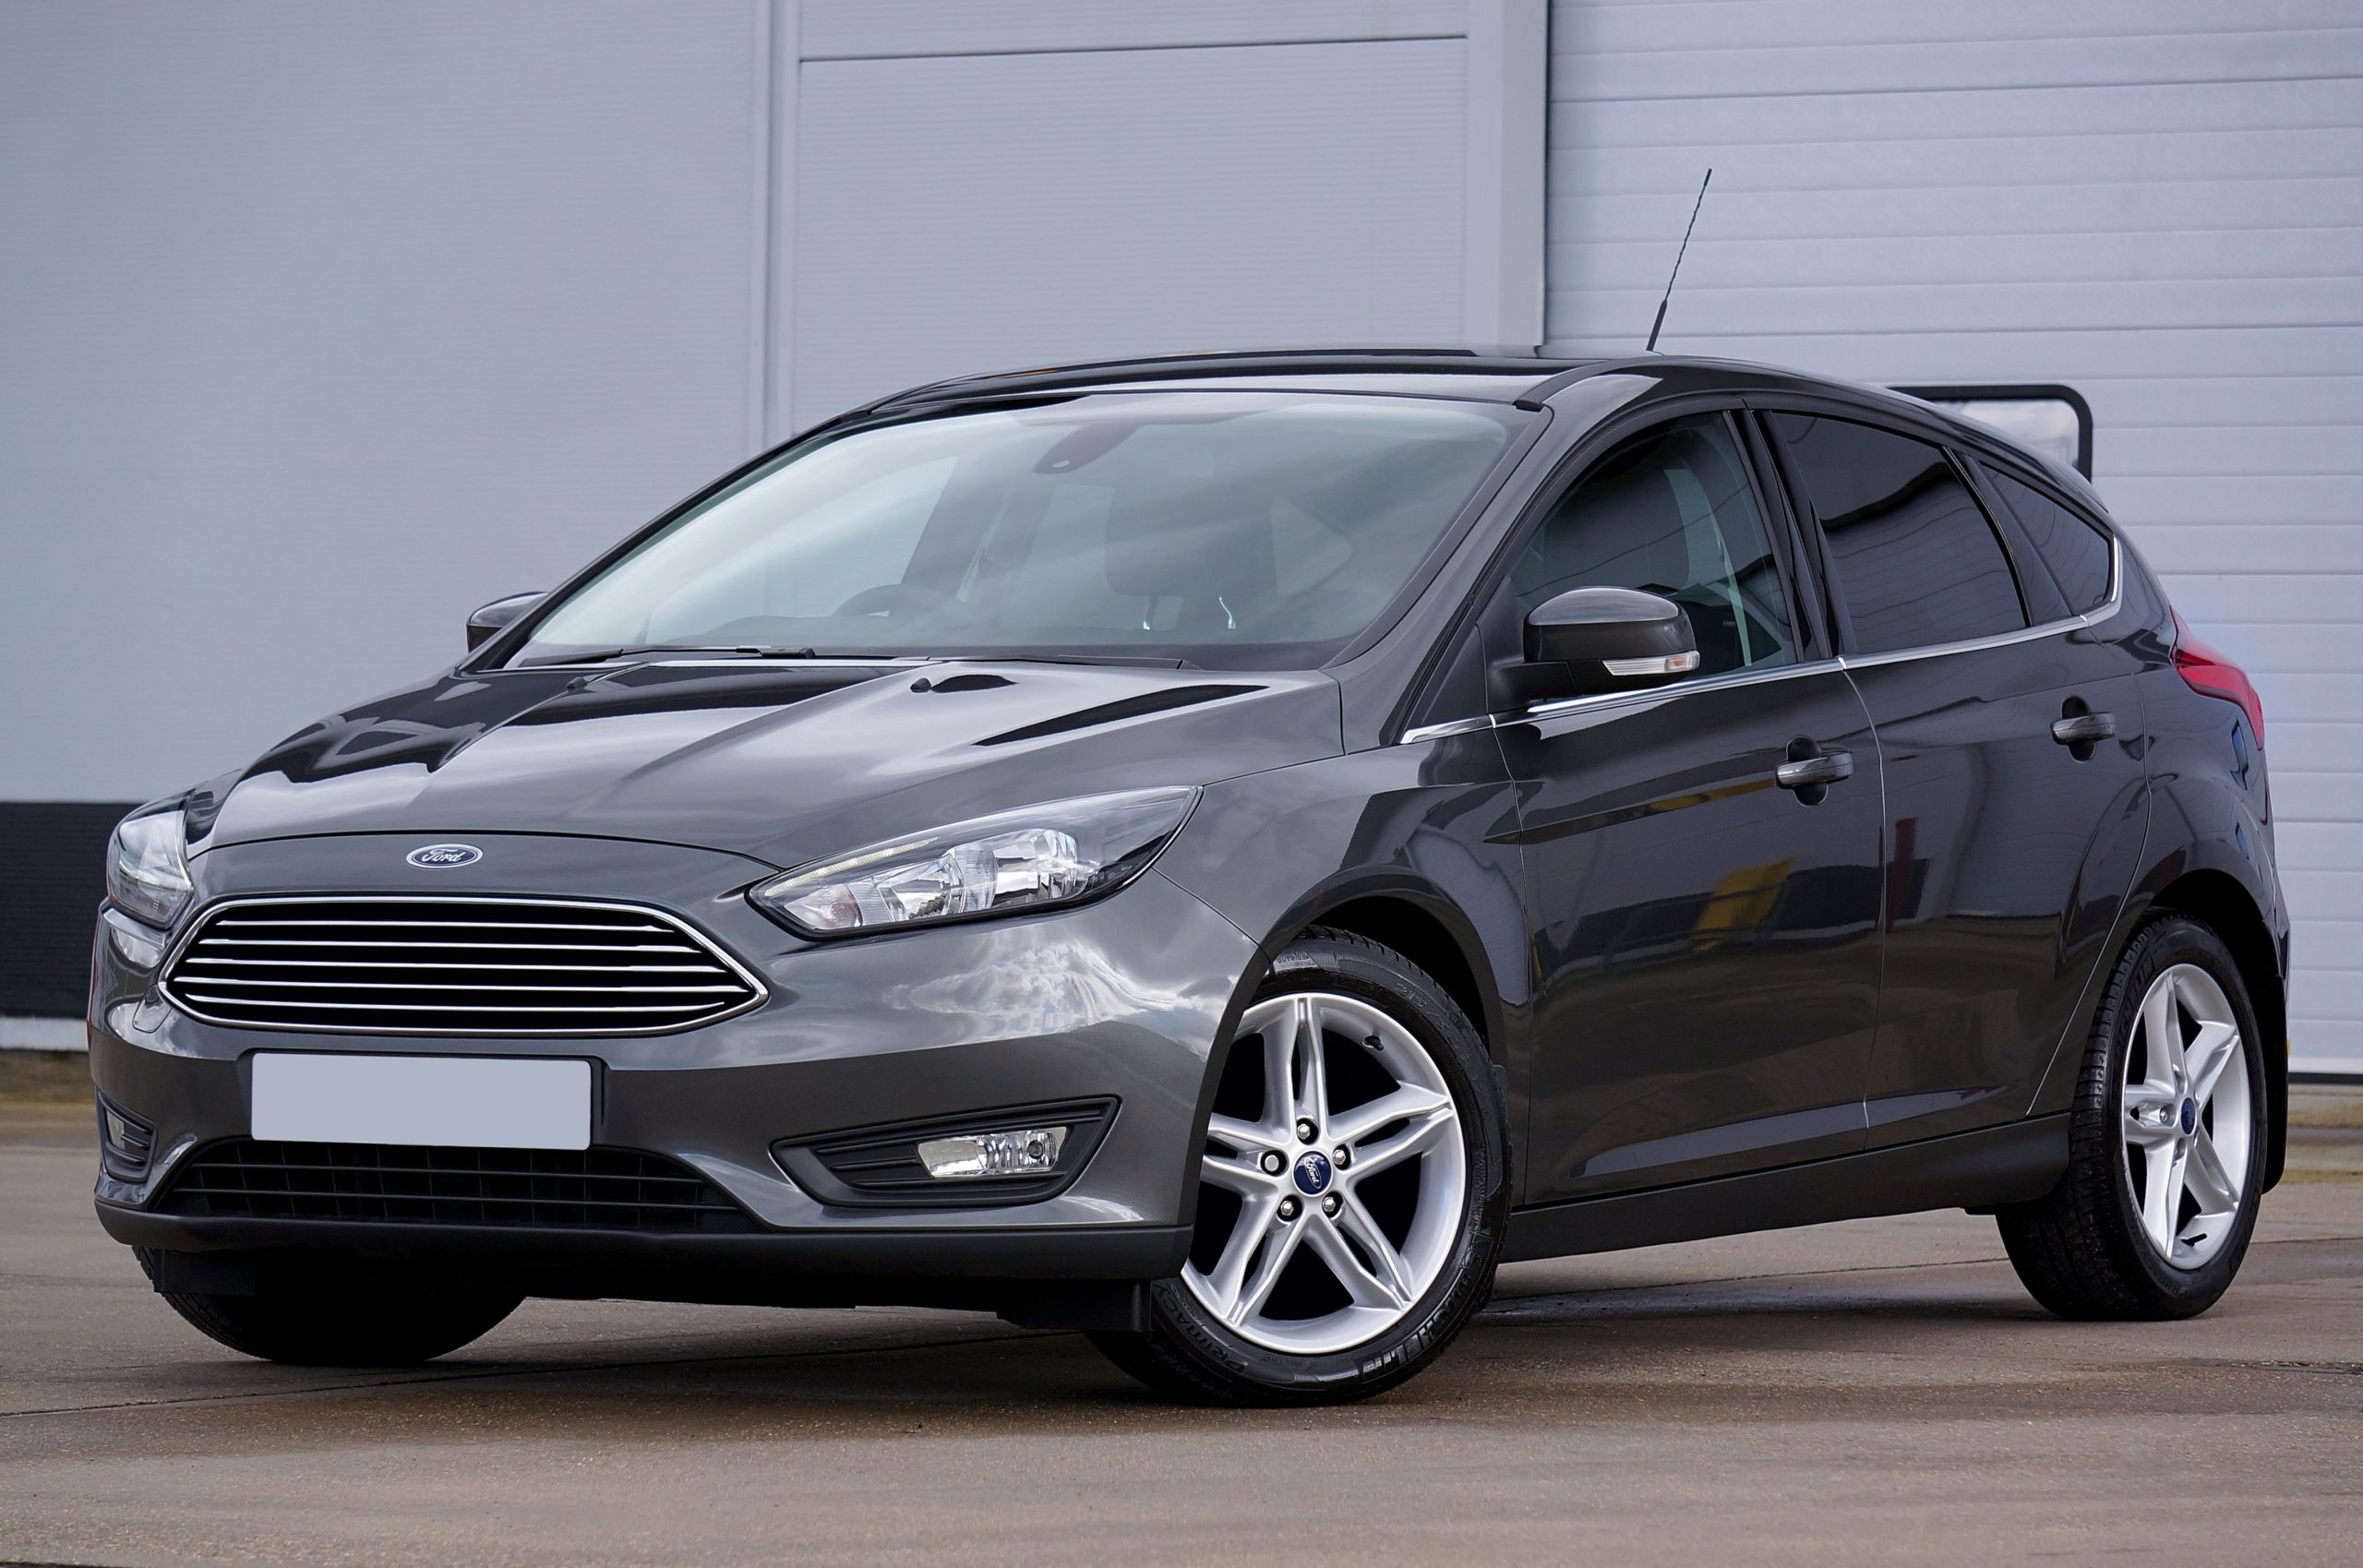 Best Features Of Ford Fusion Hybrid